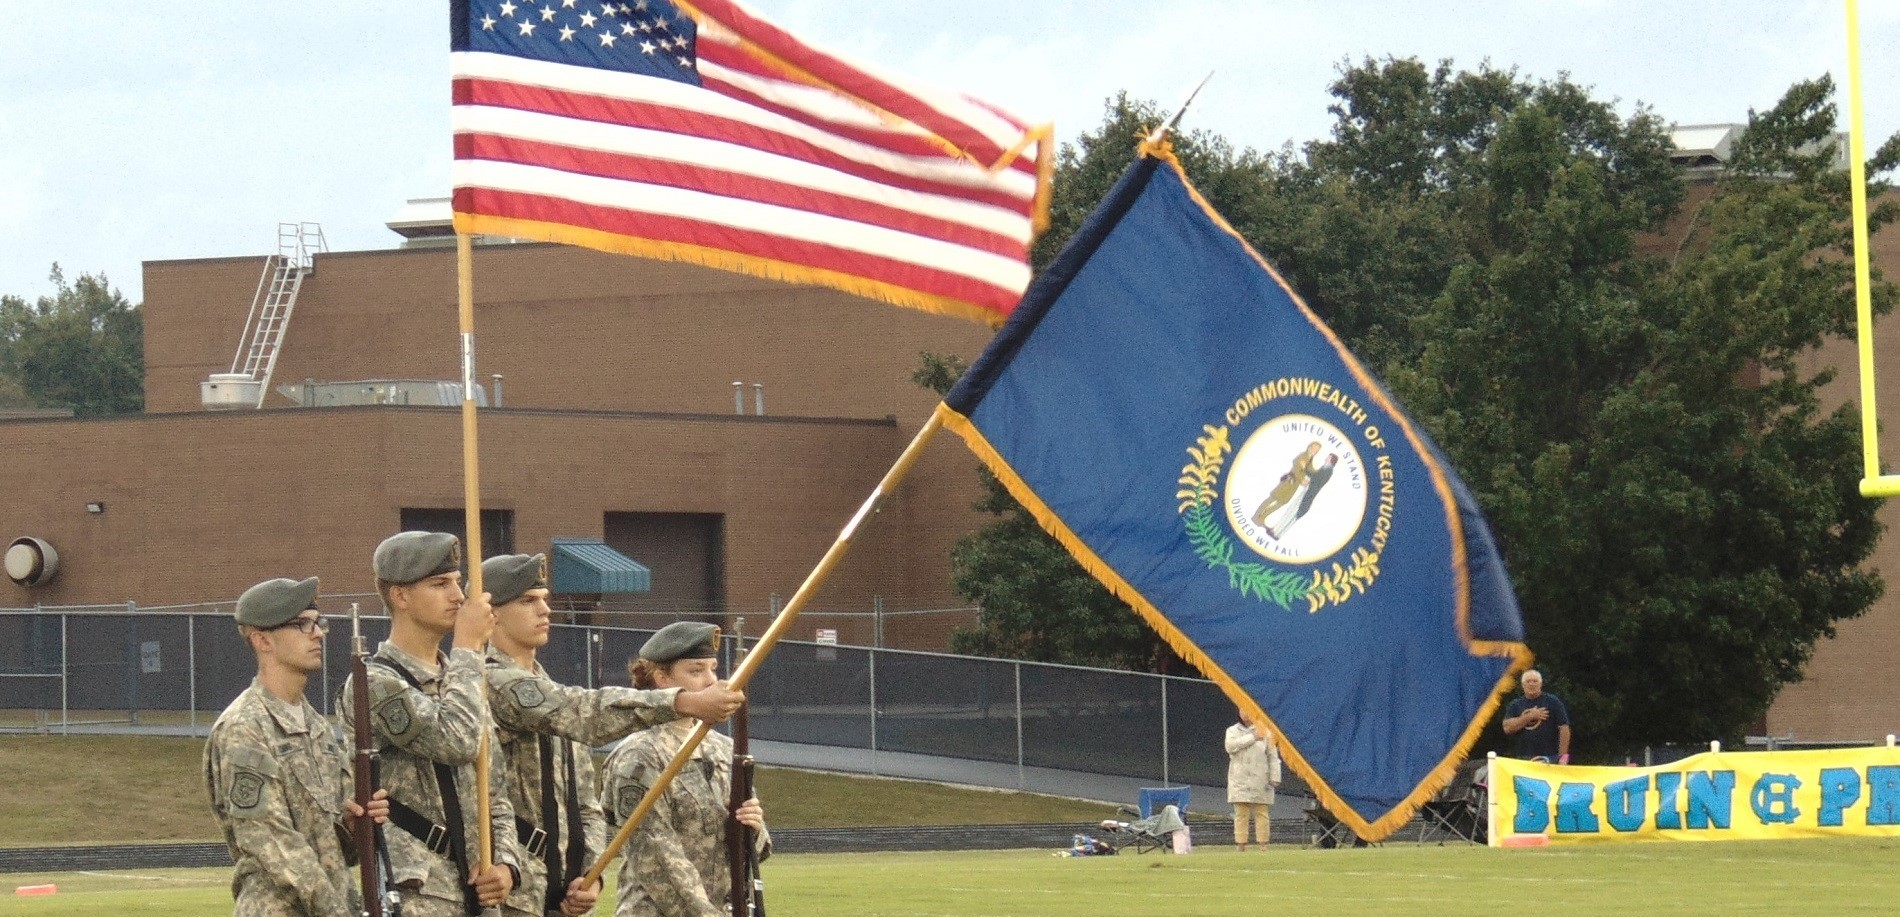 Junior ROTC Presents Flags at First Game of the Season